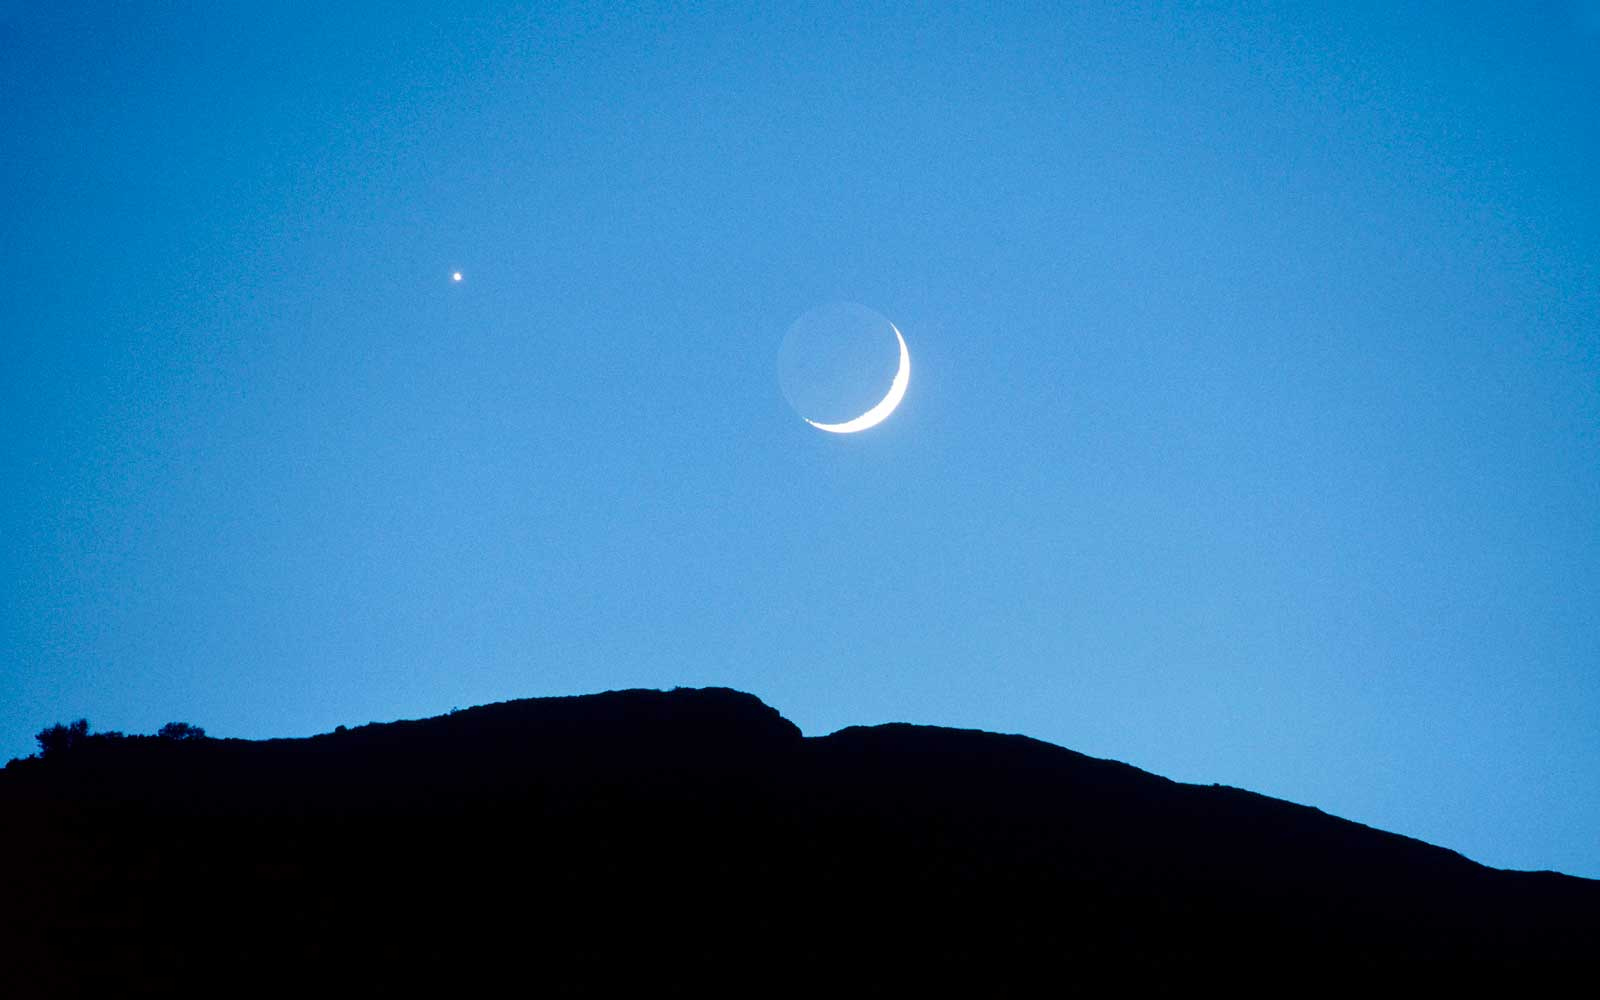 Drome, France - View of planet Venus and a crescent moon above a mountain at Joncheres in the Diois.